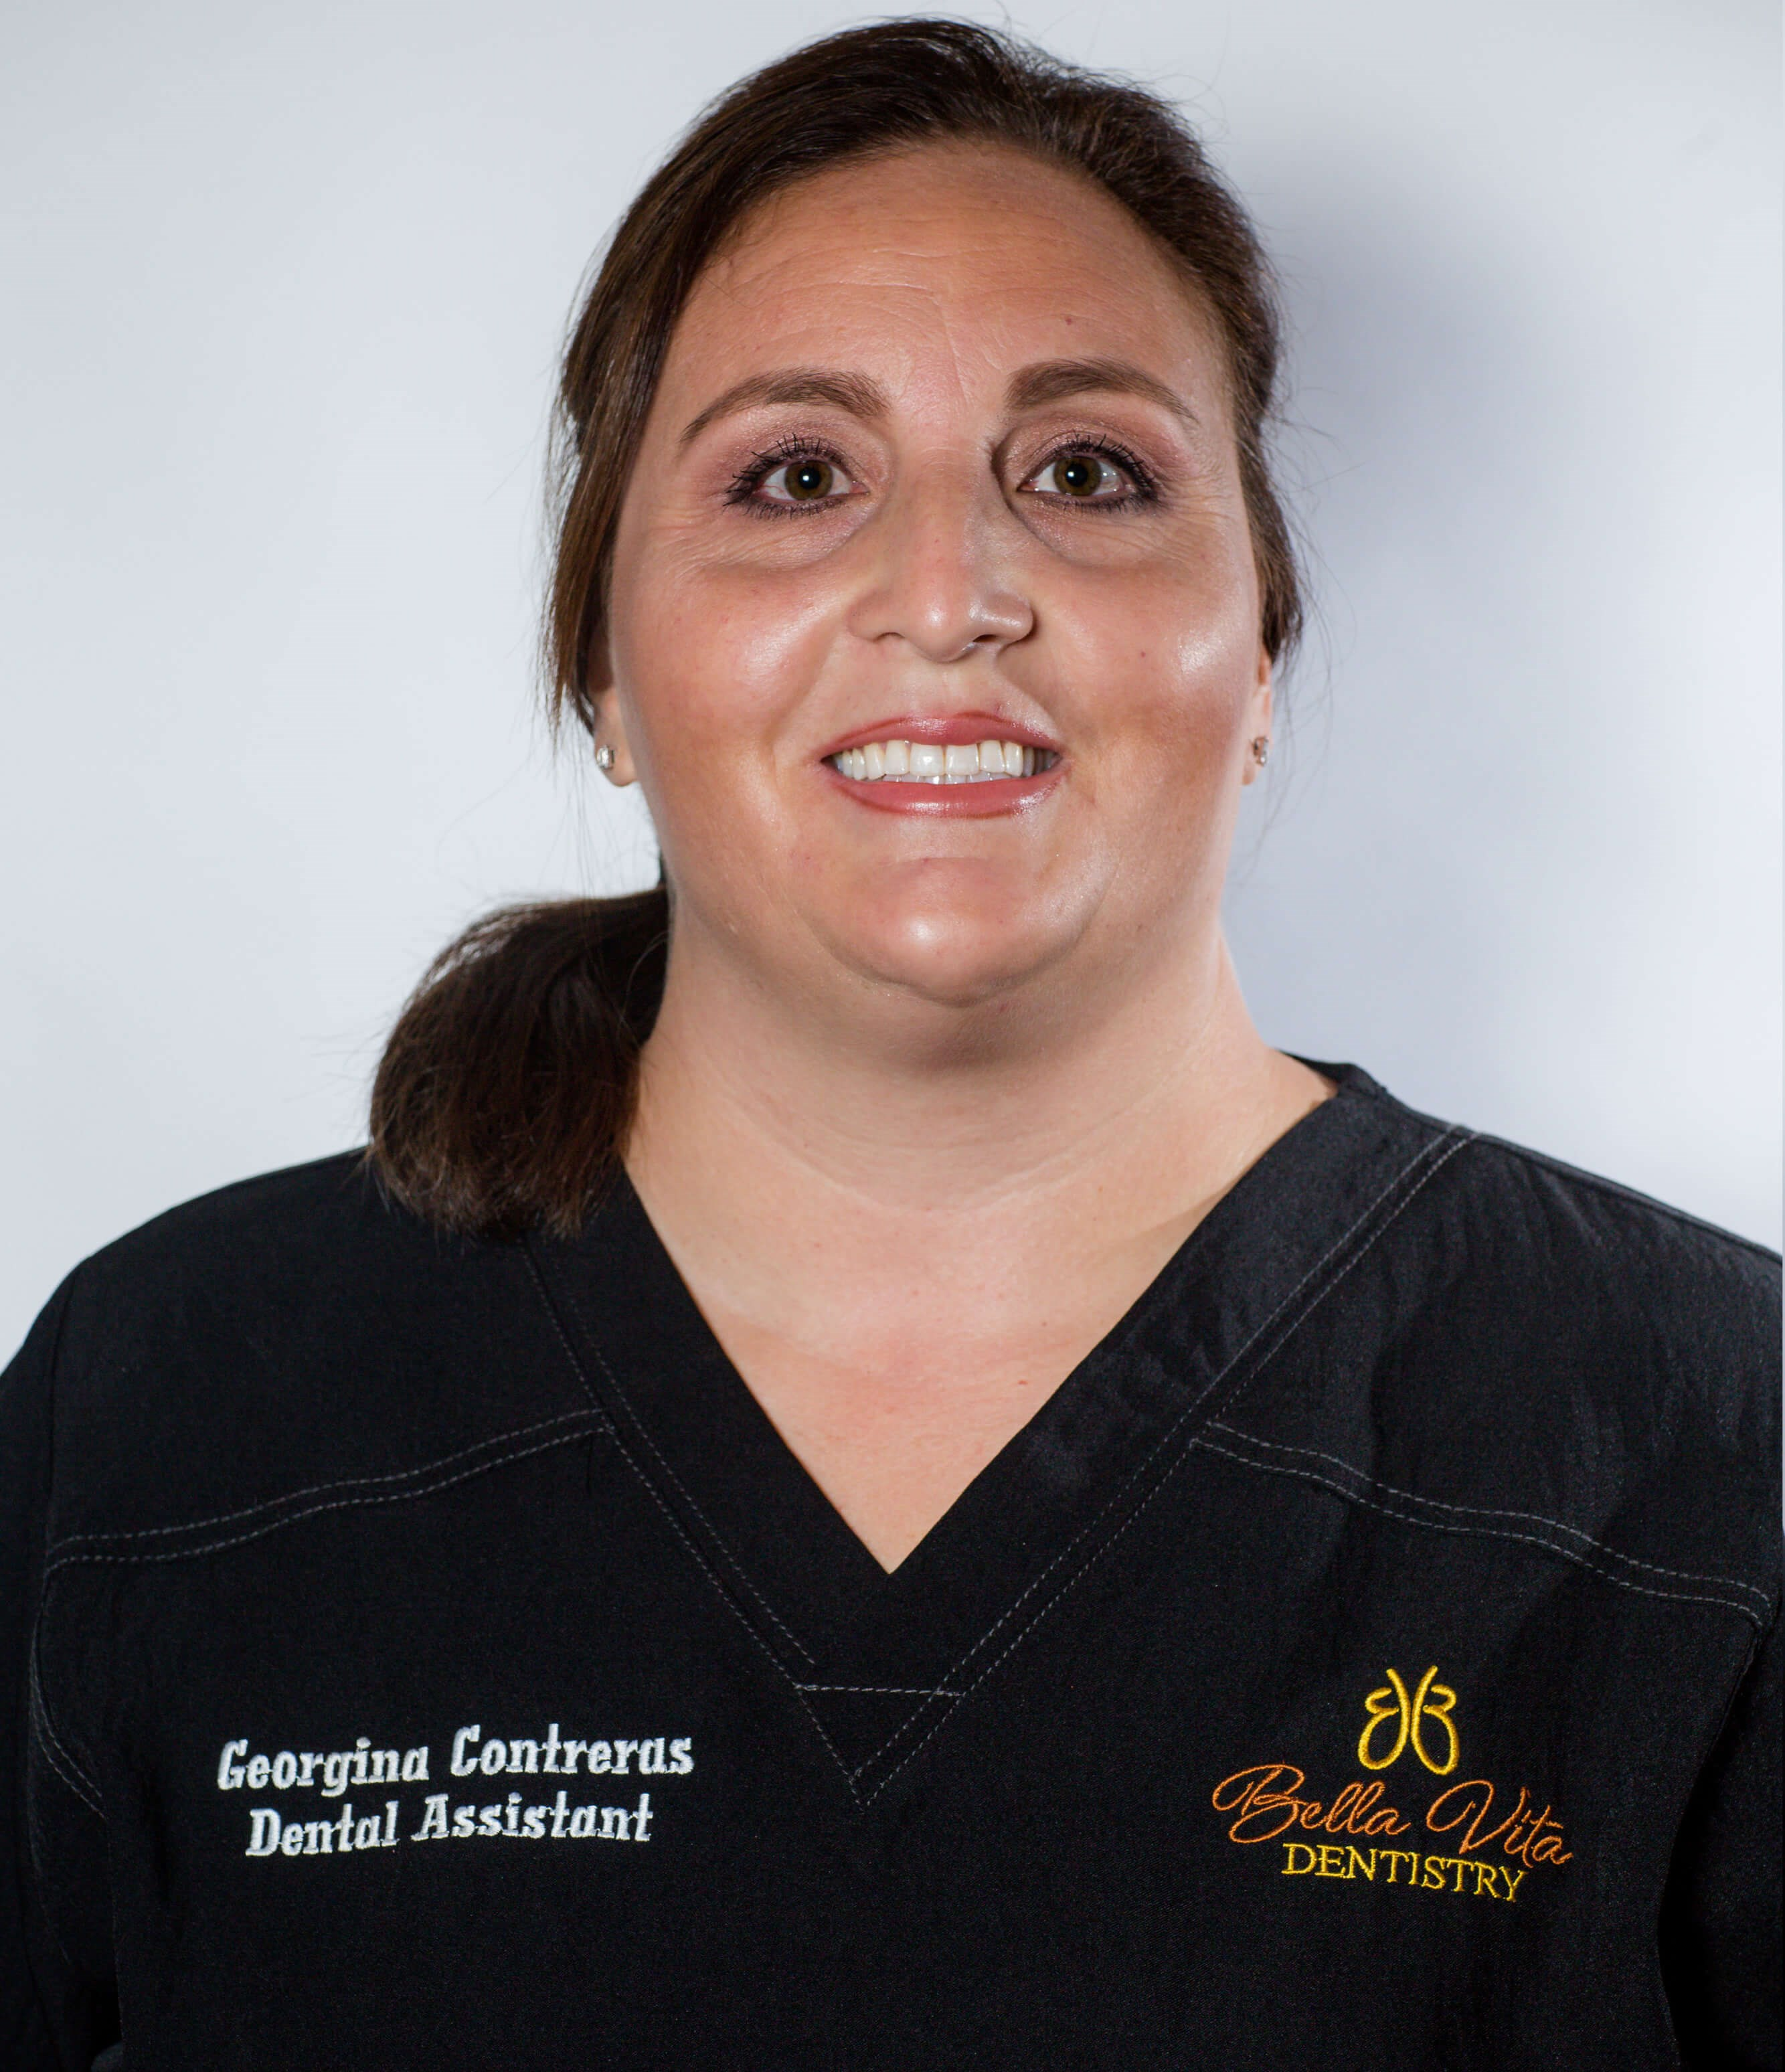 Image of Georgina Contreras